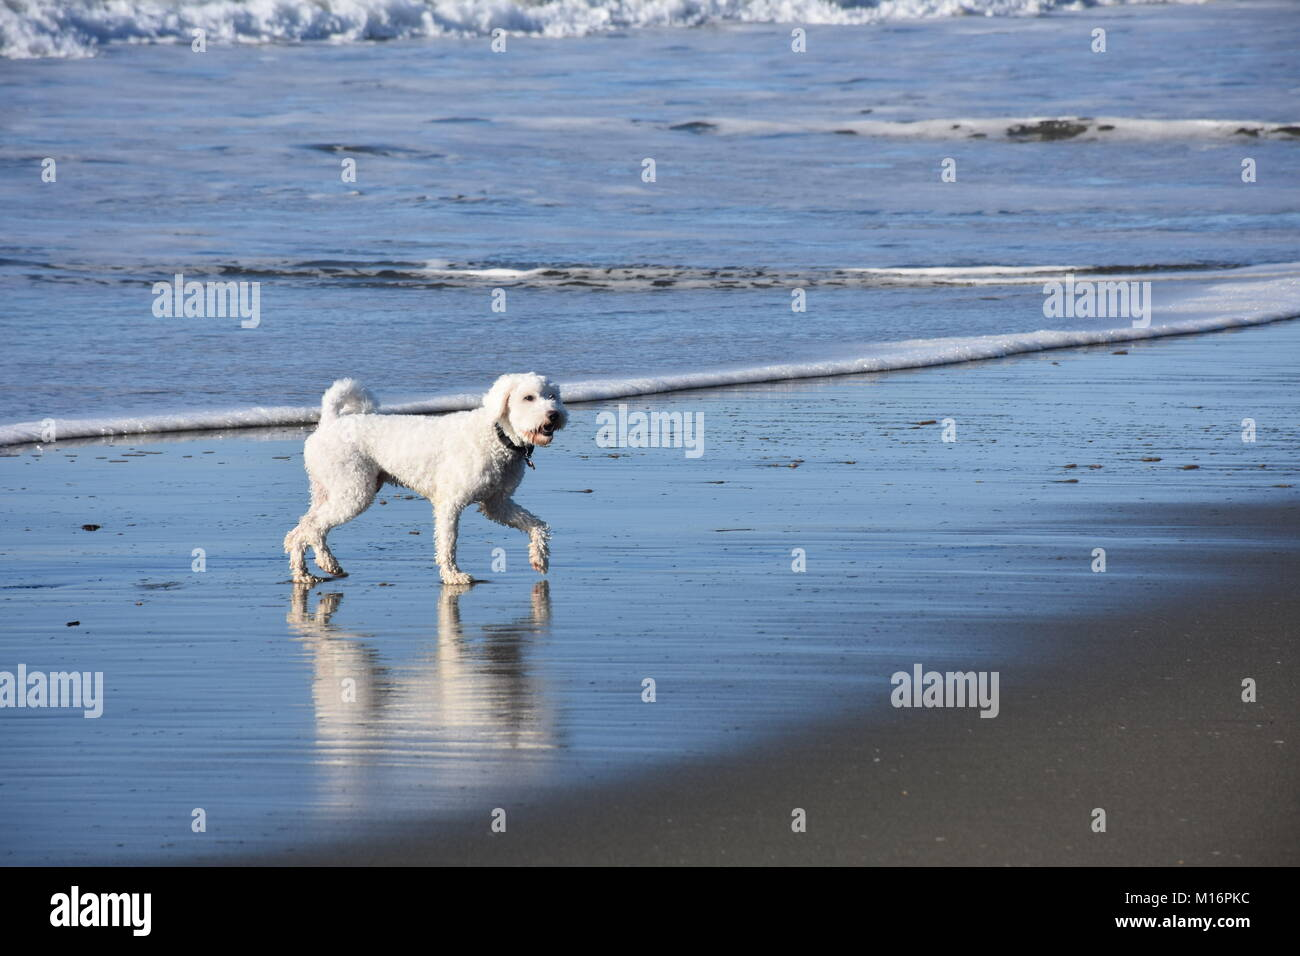 White Cockapoo playing in waves on a sunny, sandy beach Stock Photo